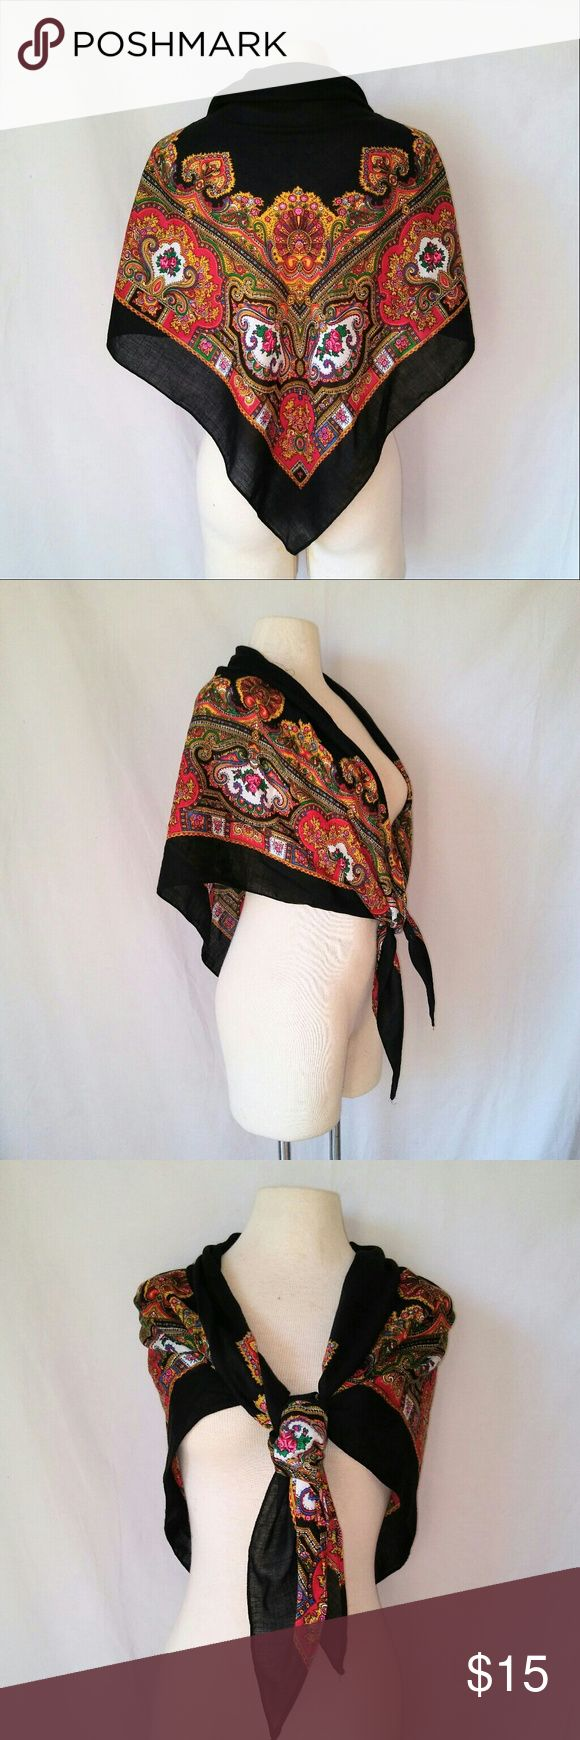 """2for1 """"Chantilly"""" Shawl Absolutely Stunning """"I feel very Chantilly today"""" Black Pink Yellow and Roses Shawl Wrap. Shawl / Shrug / Cover Up :: Perfect for Prom! Made in Japan.  In excellent used condition. From a smoke free home. Make an offer! SAVE on SHIPPING & get a DISCOUNT by making a BUNDLE! Get 20% off on 2+ items. 2for1 SCARF SALE: Buy one """"2for1"""" scarf at full price and get another scarf of equal or lesser value for free! Purchase the first scarf, comment on the second scarf, & I'll…"""